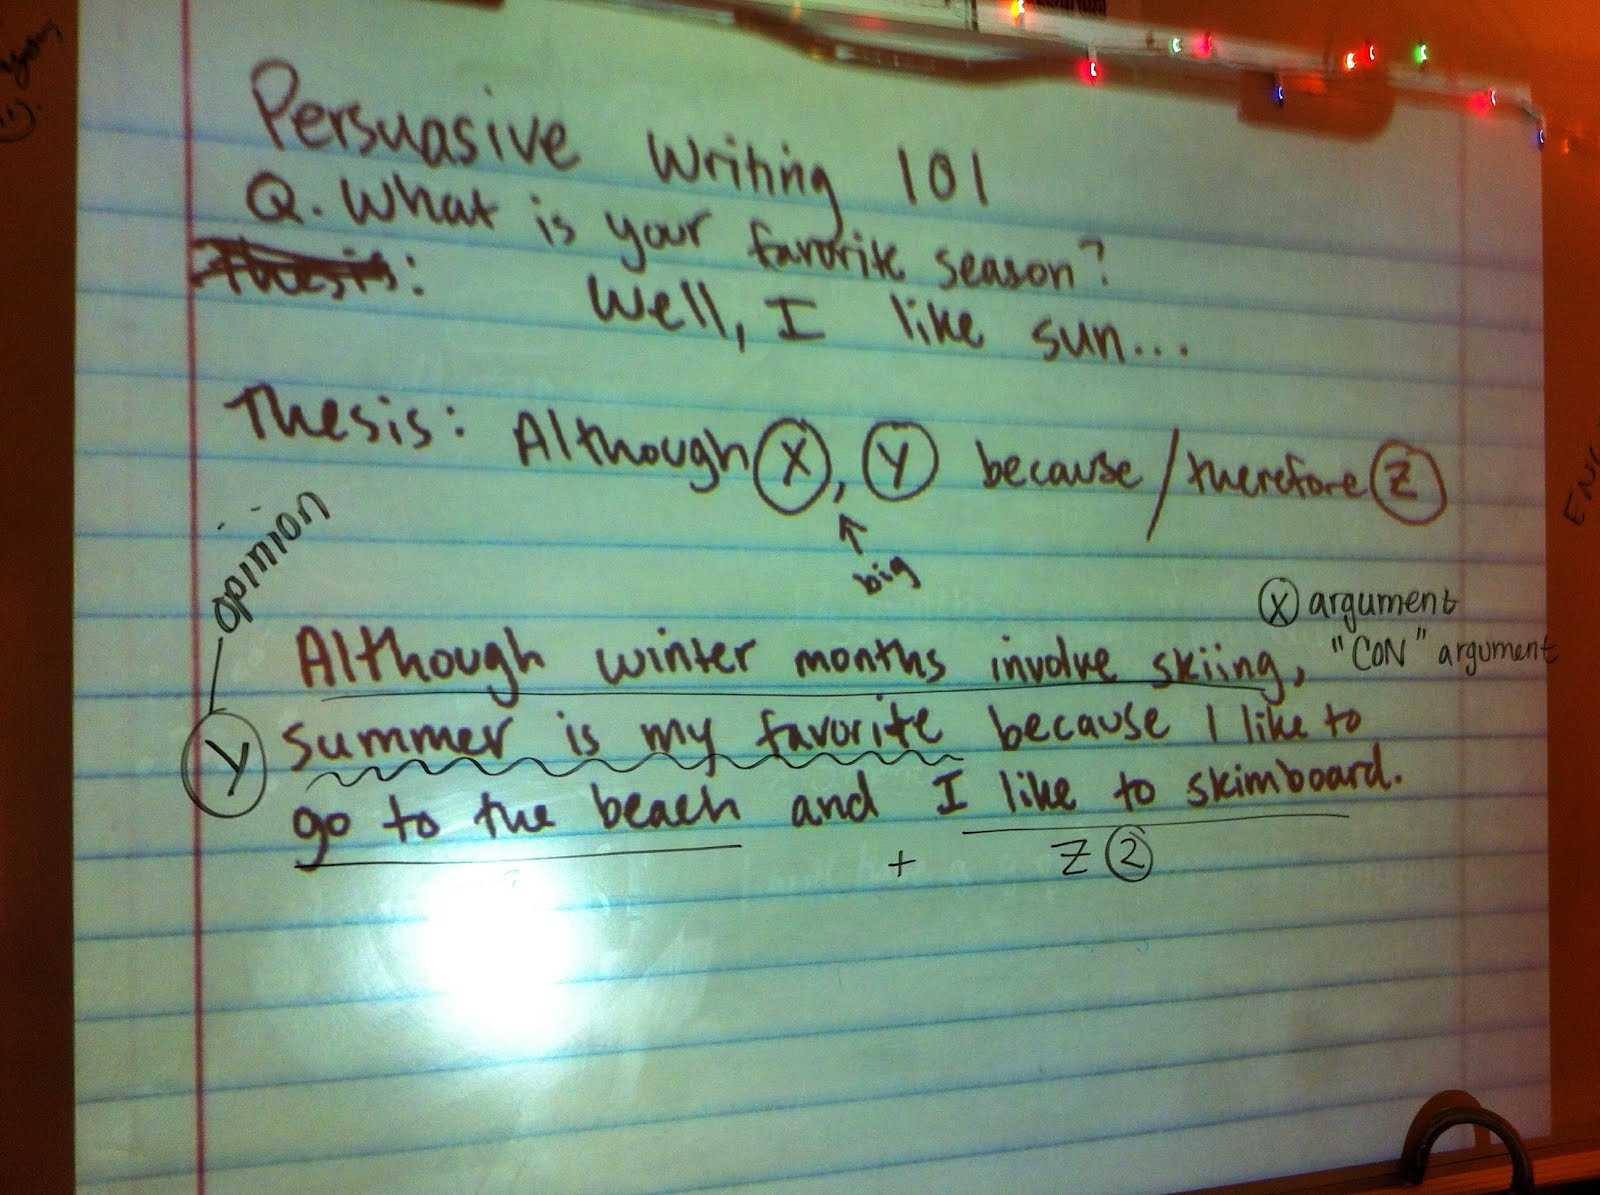 Methods in writing a paper image 3